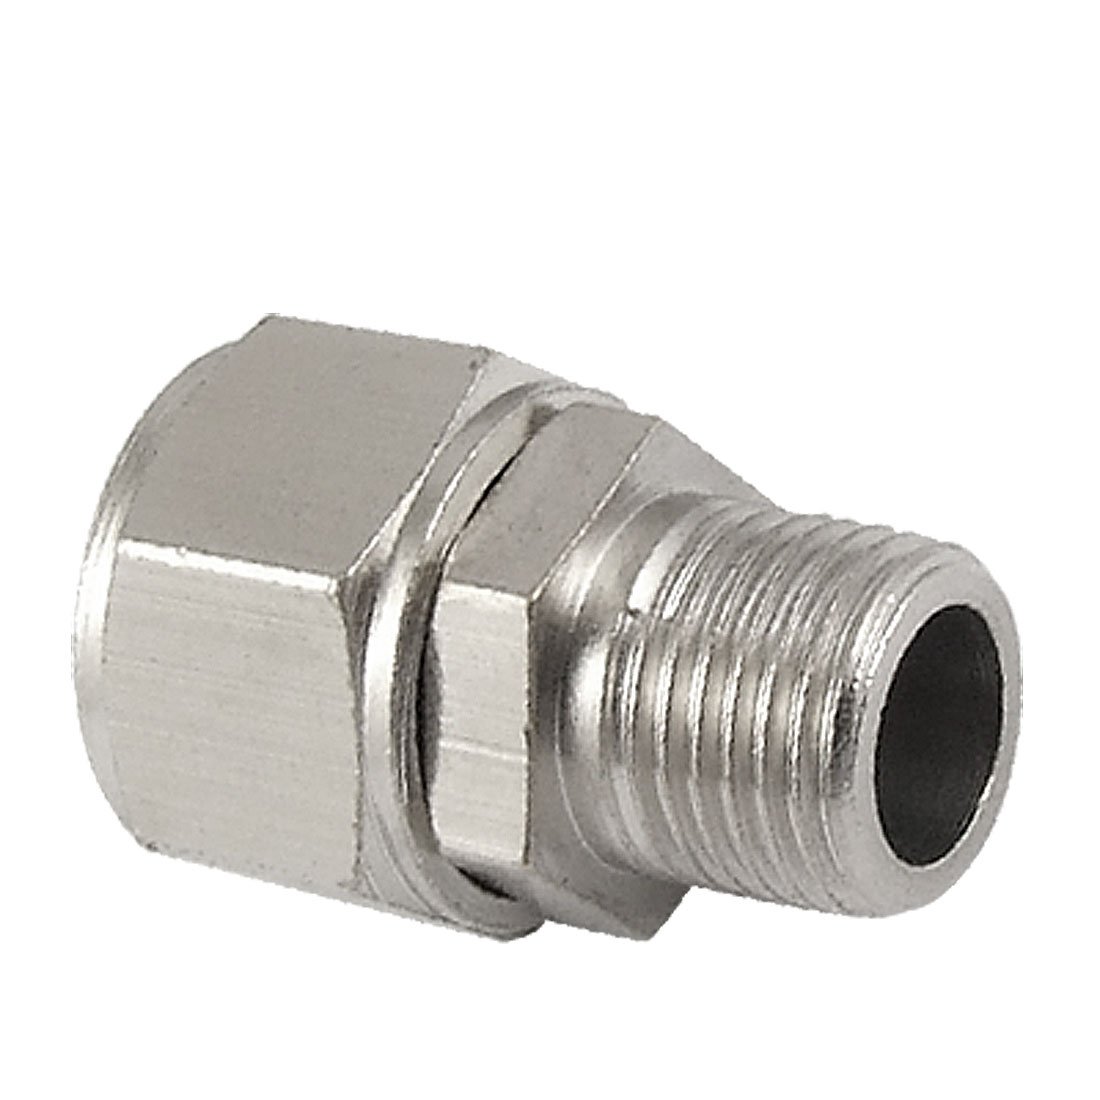 Pneumatic Air Piping Metal Straight 9.5mm Thread Fitting